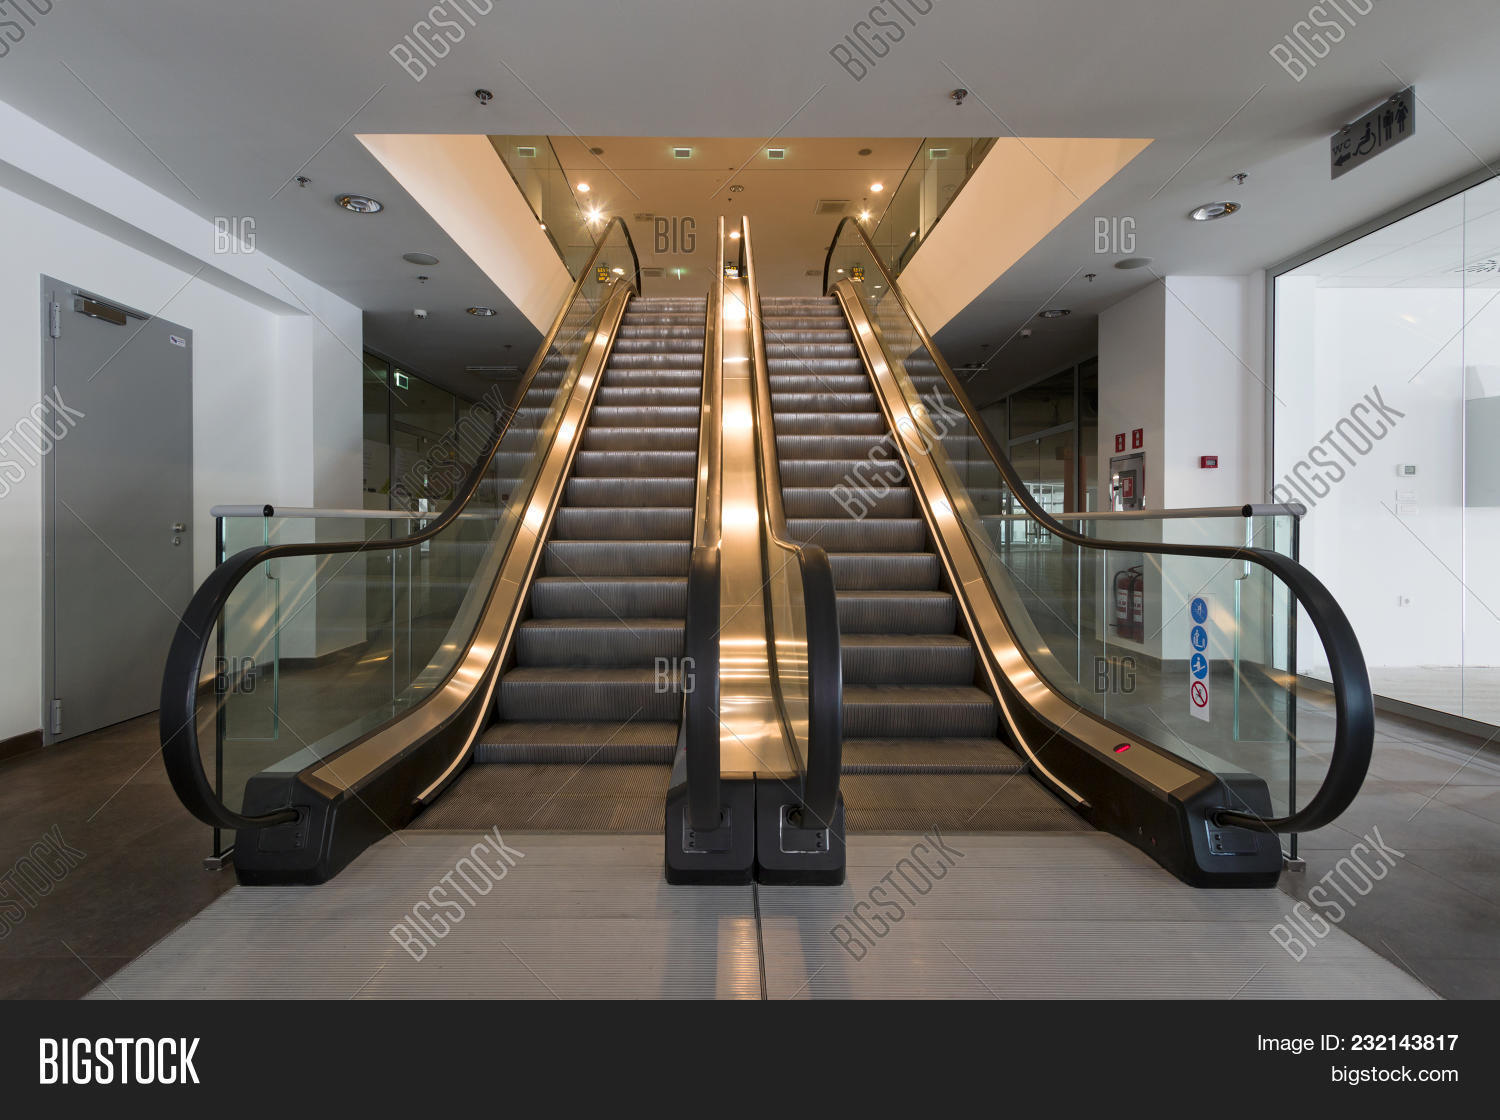 Moving Staircase,, Escalator In New Business Building